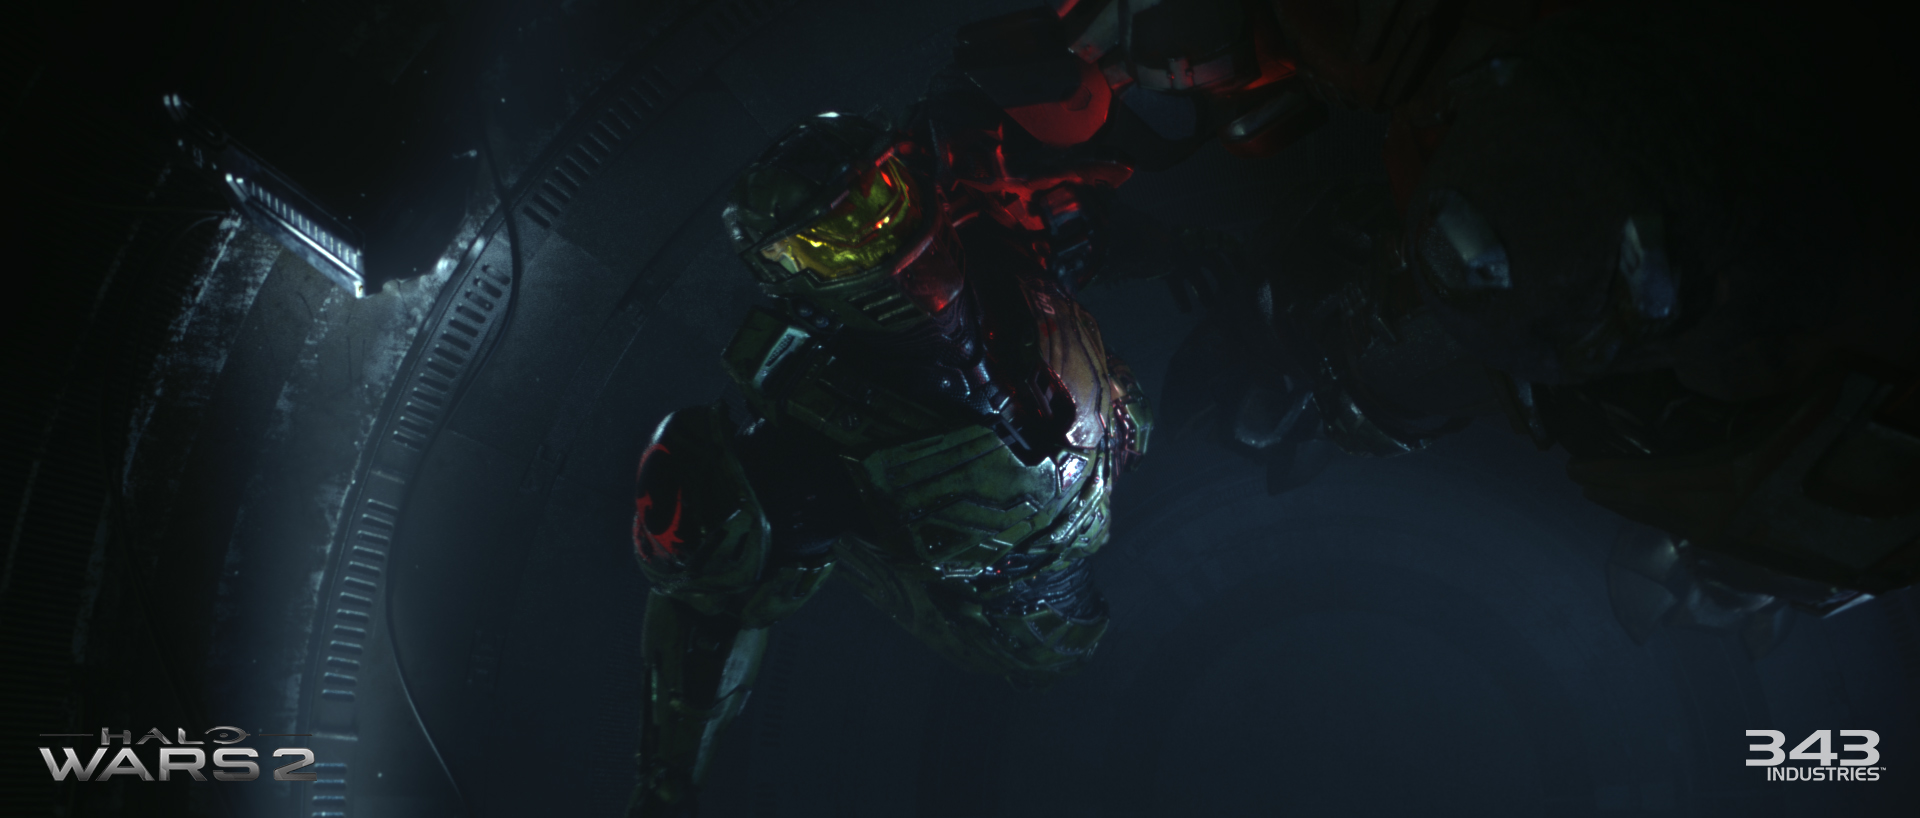 Microsoft Fall Wallpaper Gamescom 2015 Halo Wars 2 Announced For Xbox One And